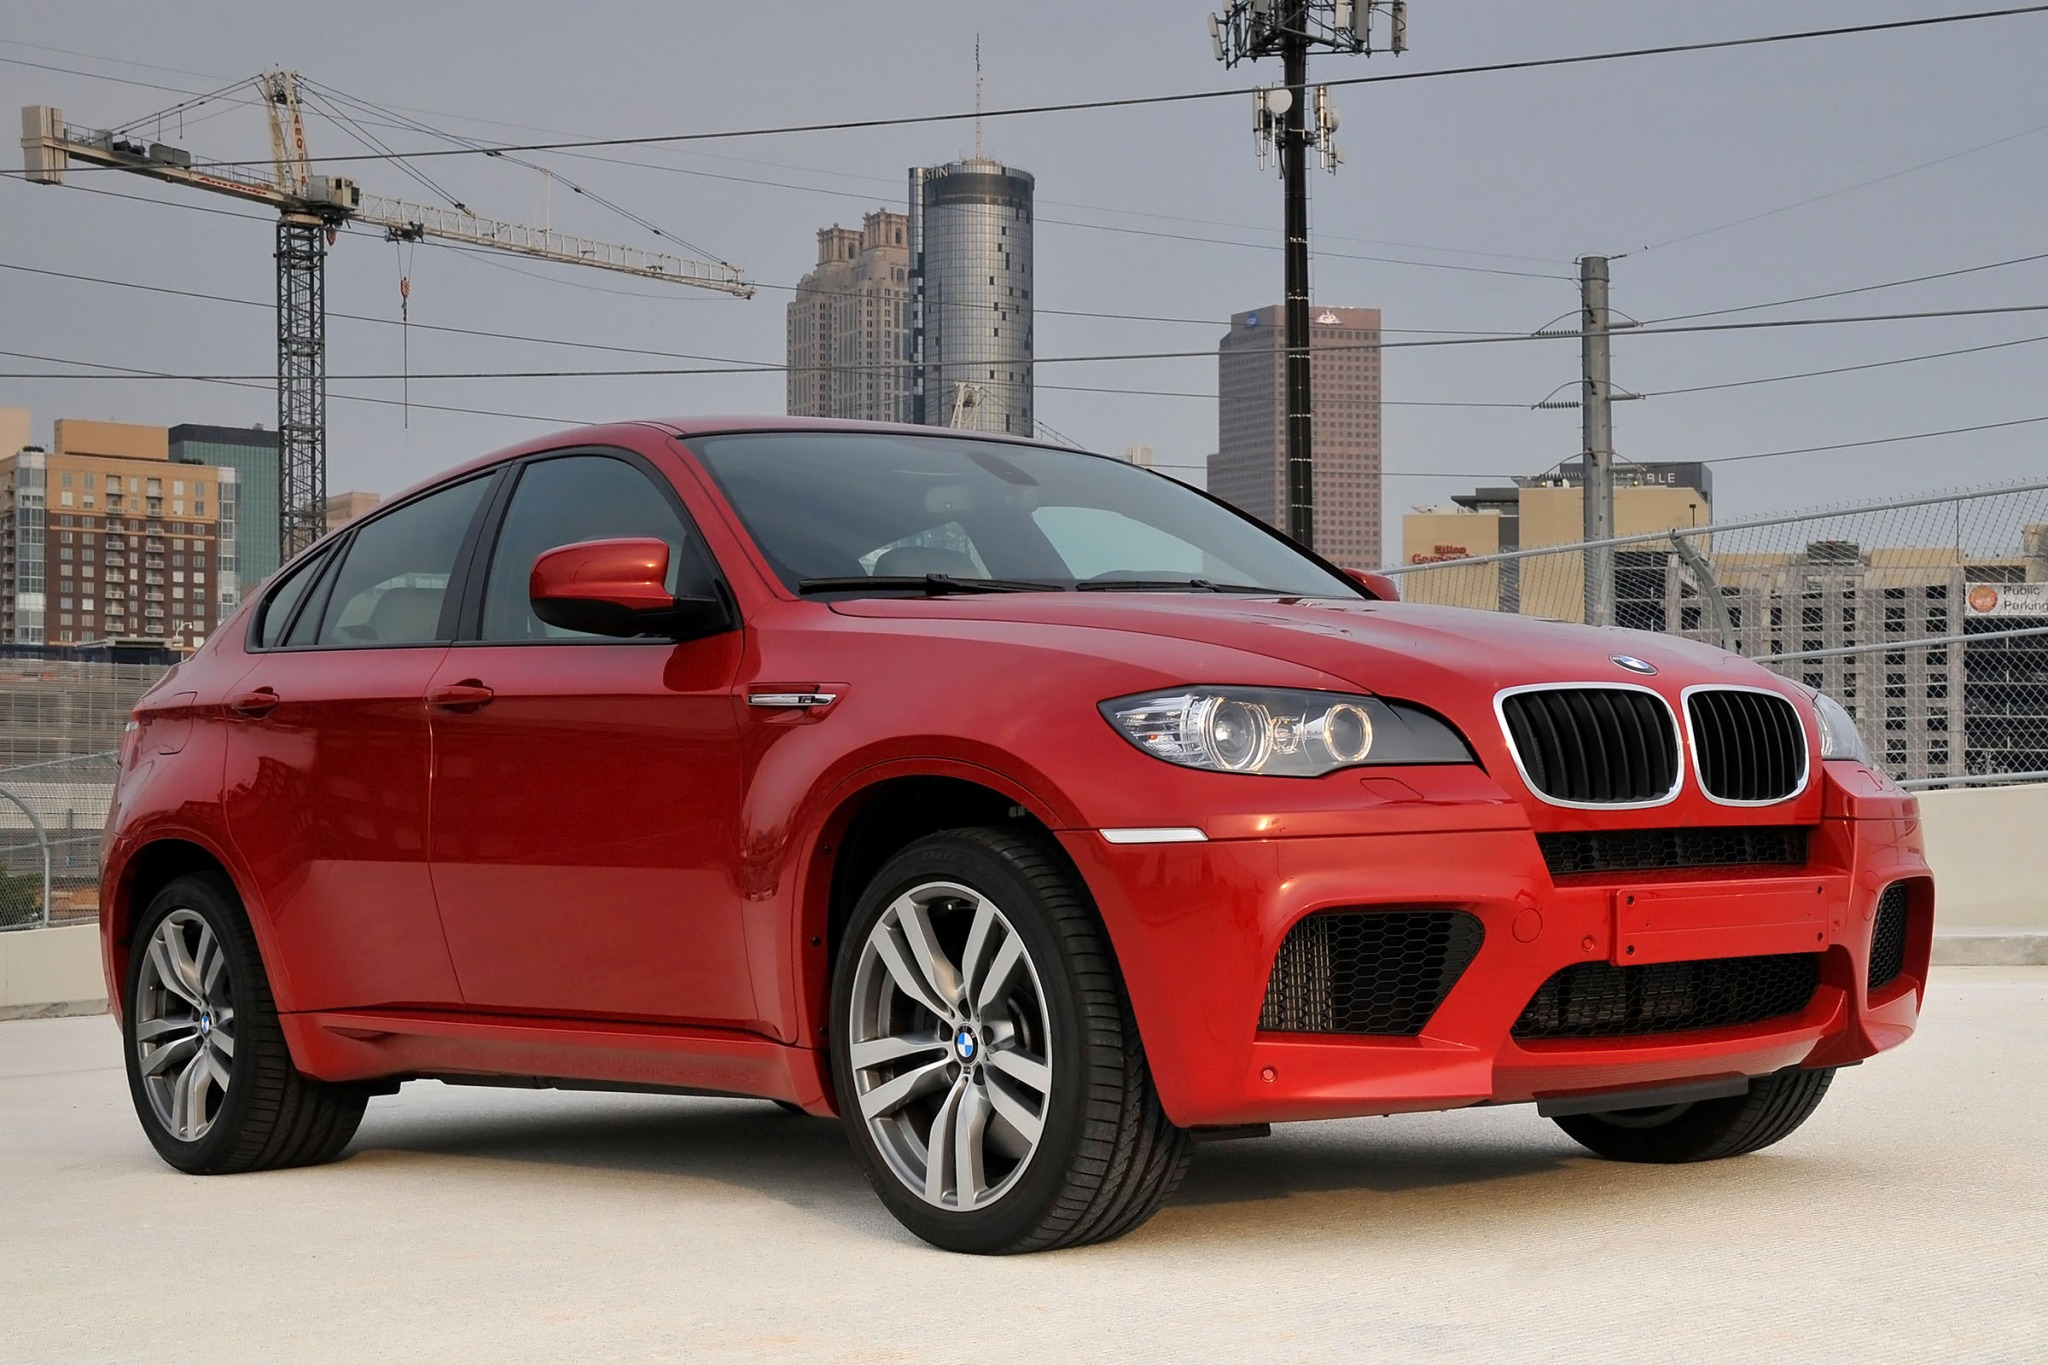 2012 BMW X6 M Gauge Clust interior #5